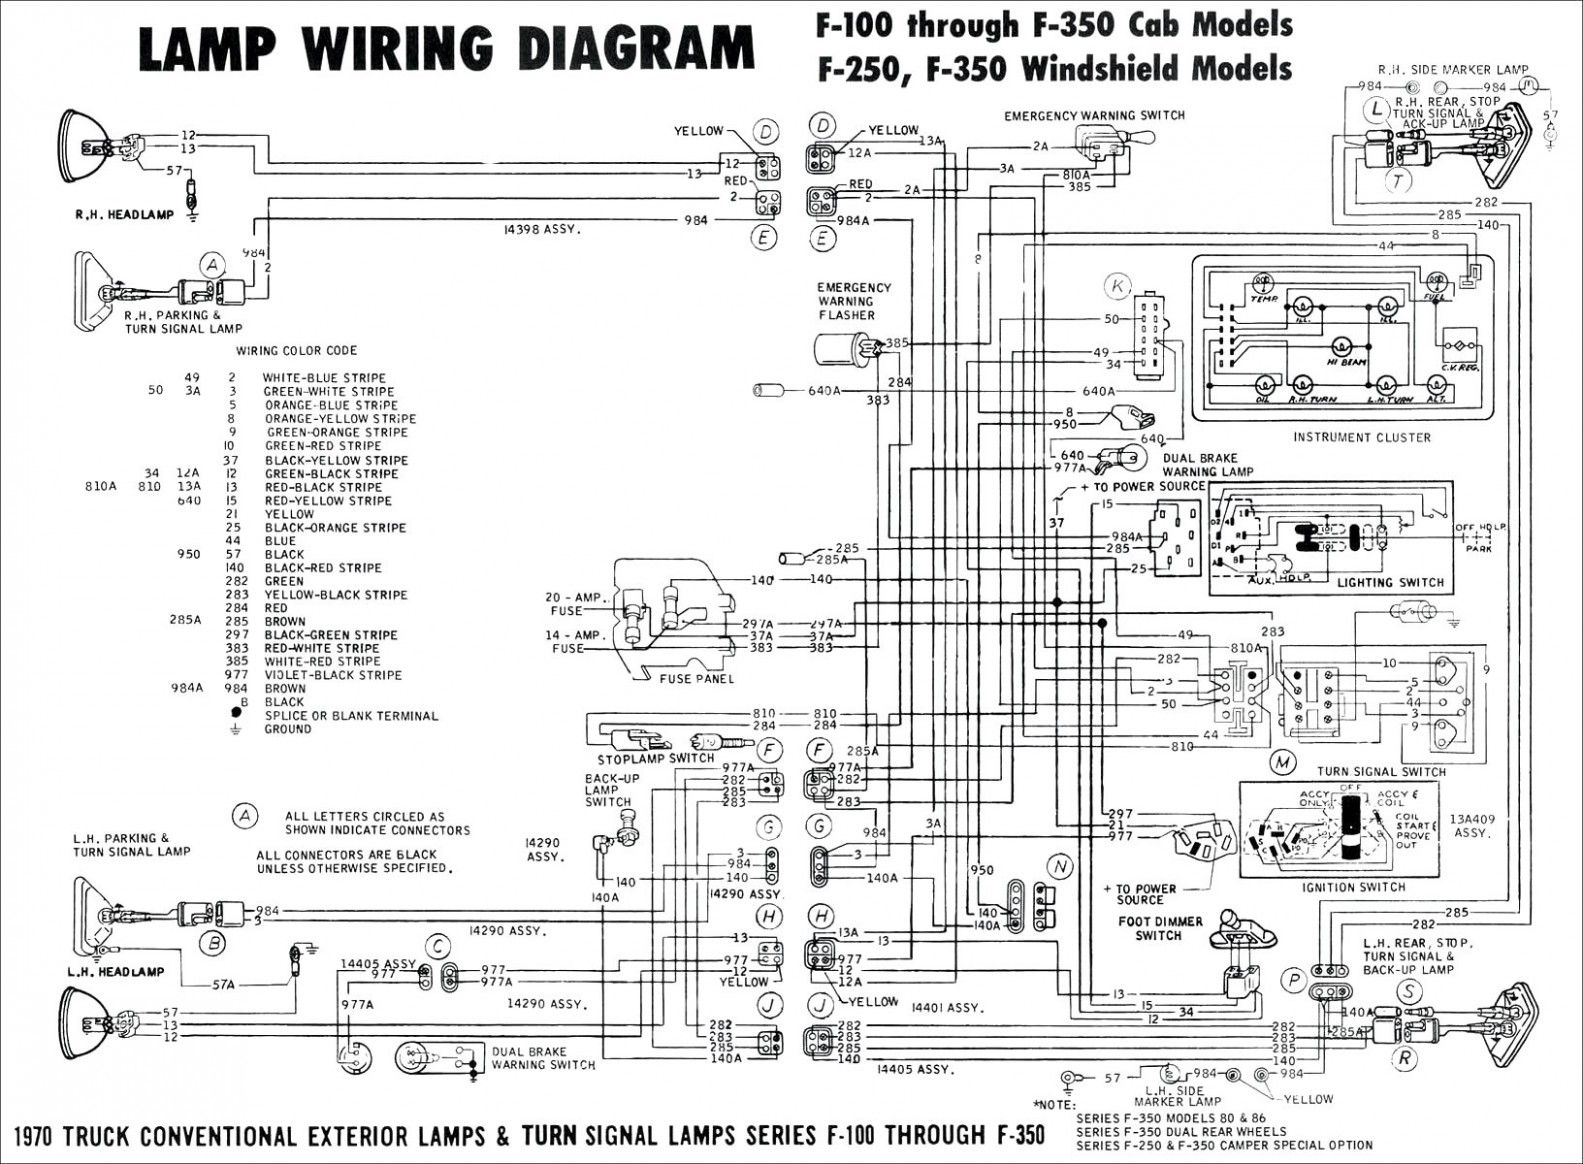 Engine Wiring Diagram For 6 Ford Ranger Malaysia Engine Wiring